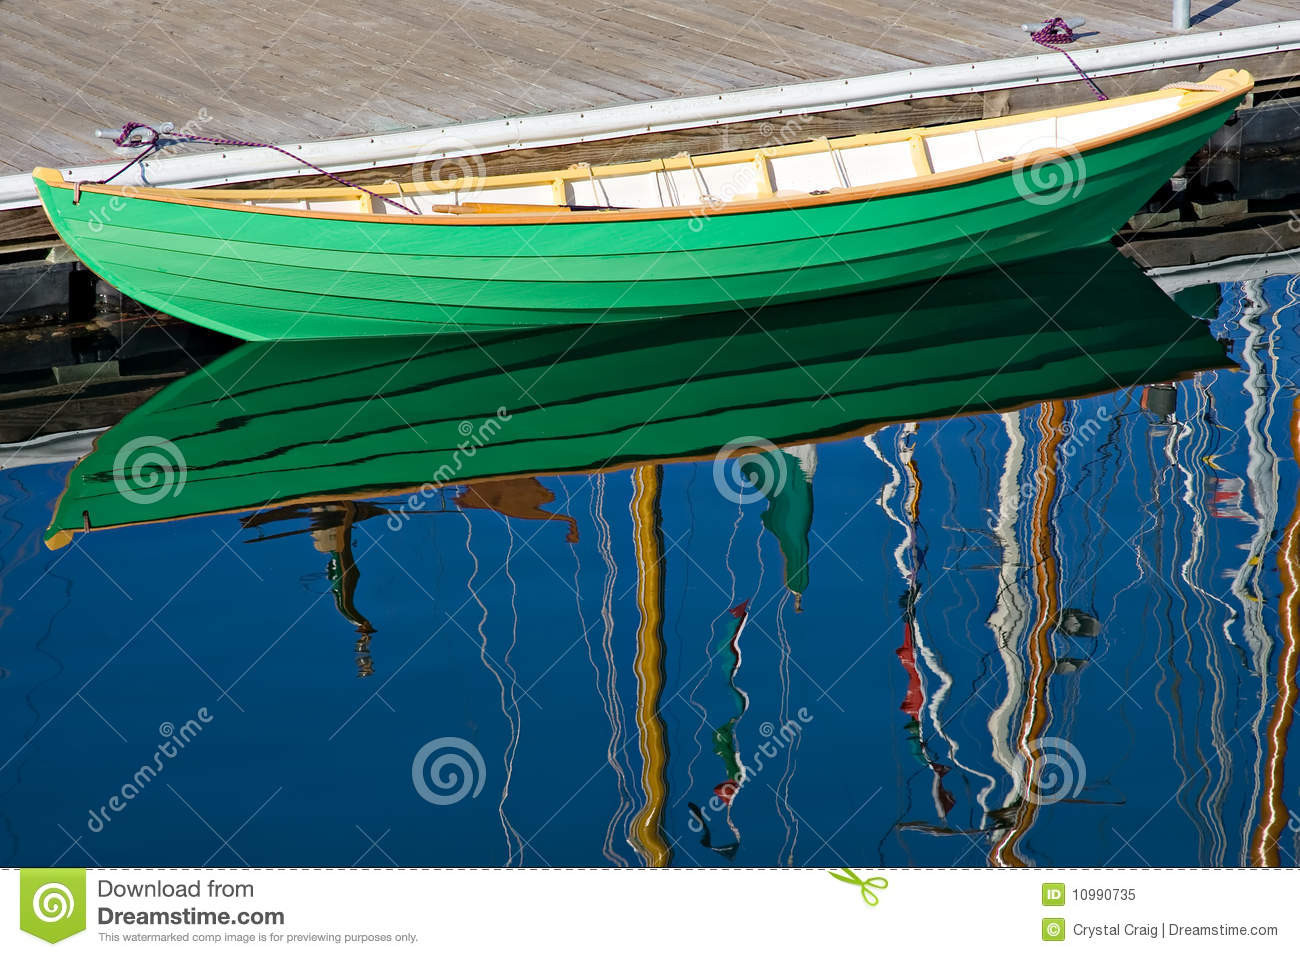 Beautifully crafted wooden row boat resting dockside in brightly ...